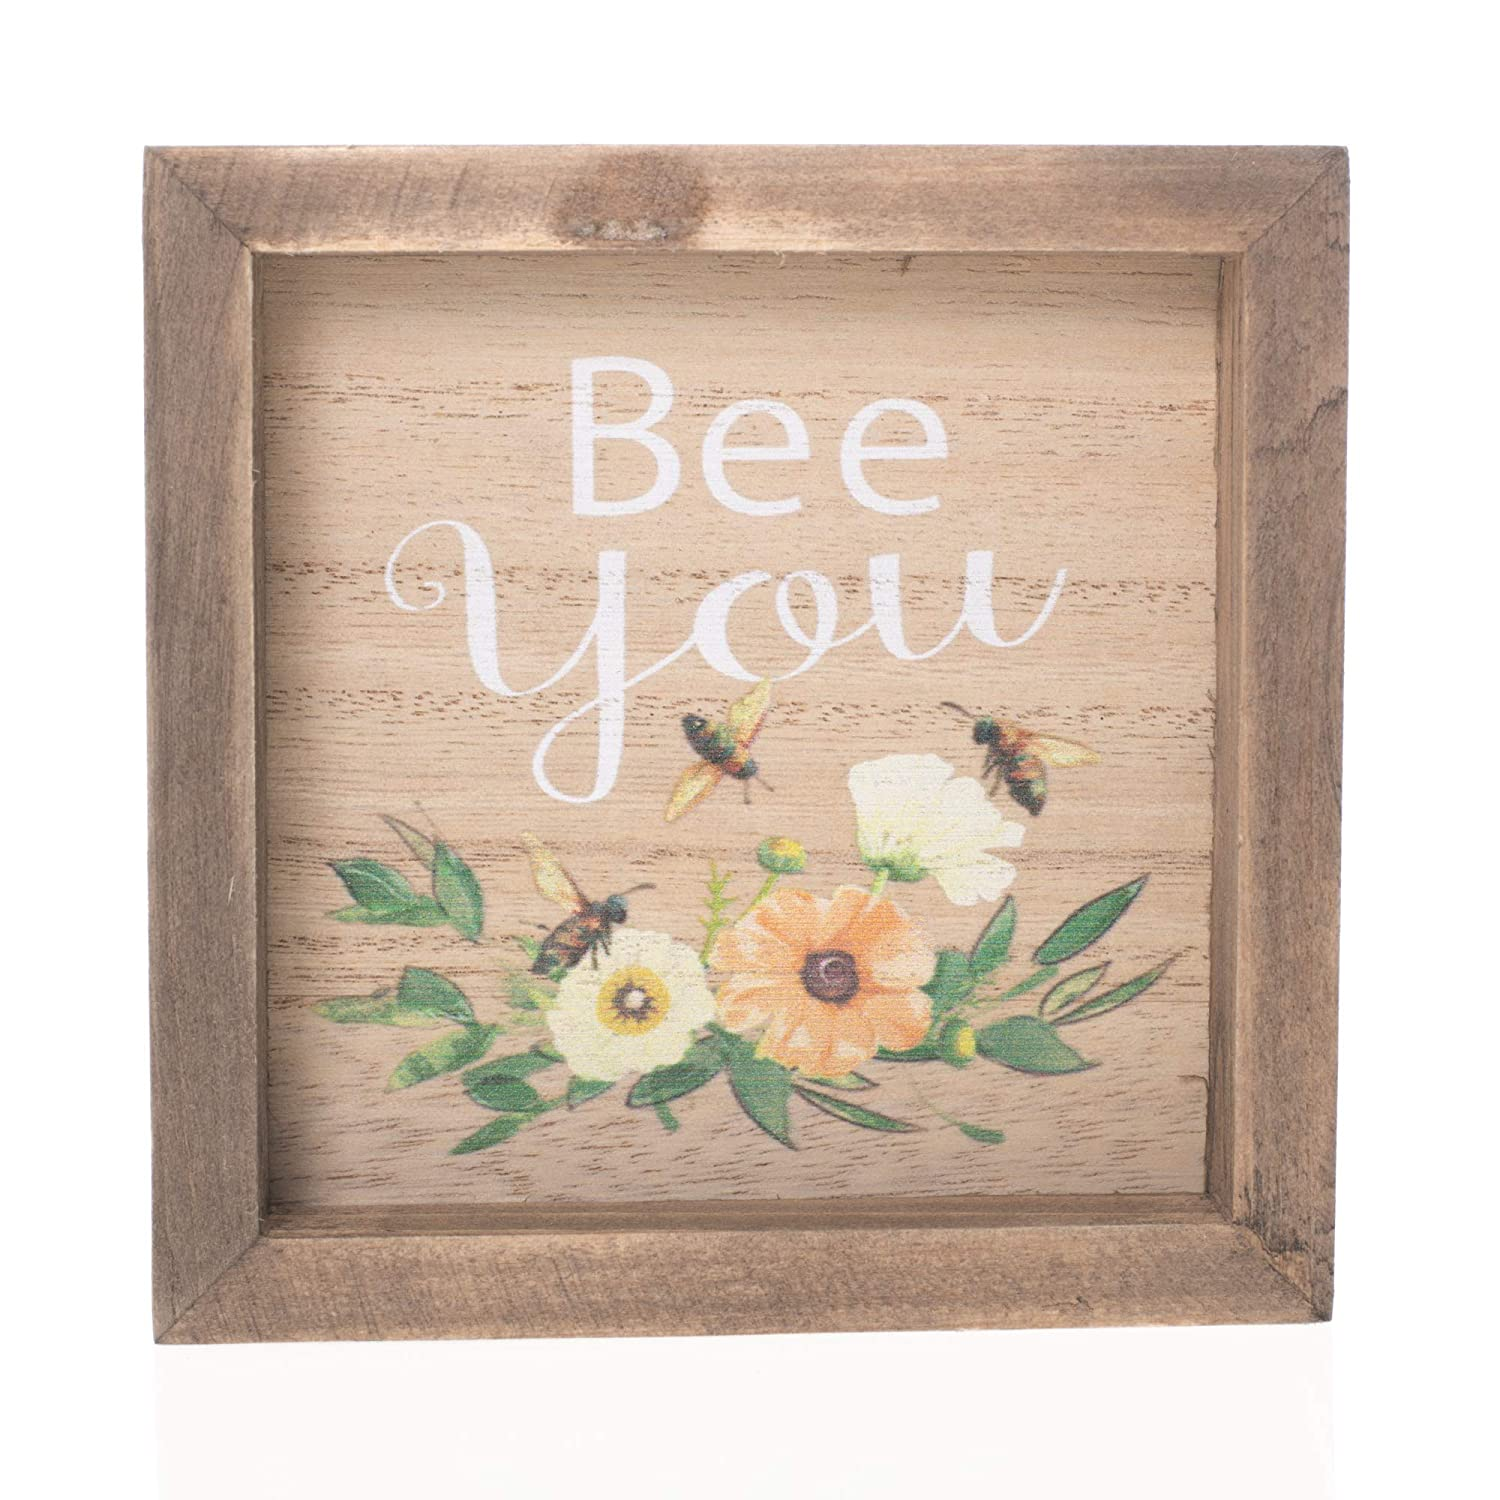 Dicksons Bee You Honey Bees and Flowers Rustic 5 x 5 Wood Tabletop Plaque